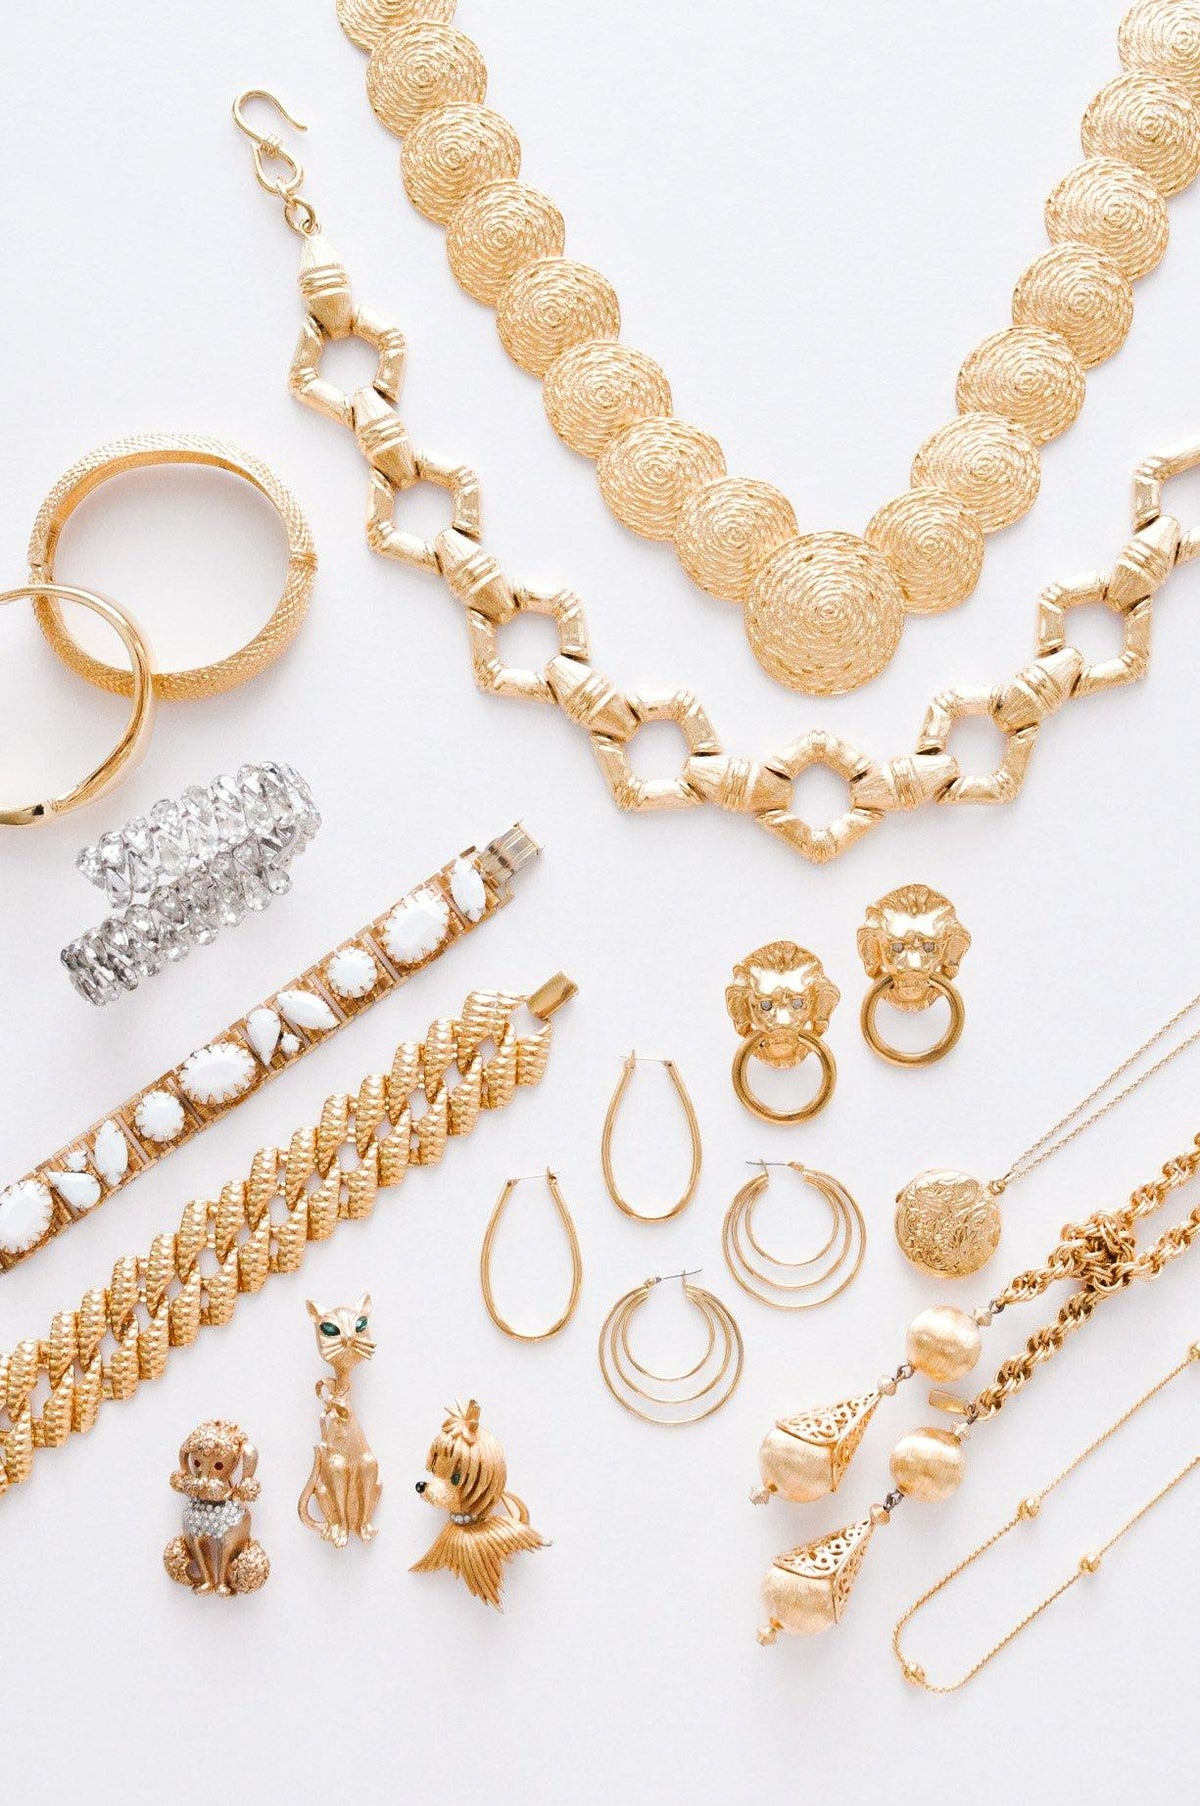 Vintage jewelry classics from Sweet & Spark.